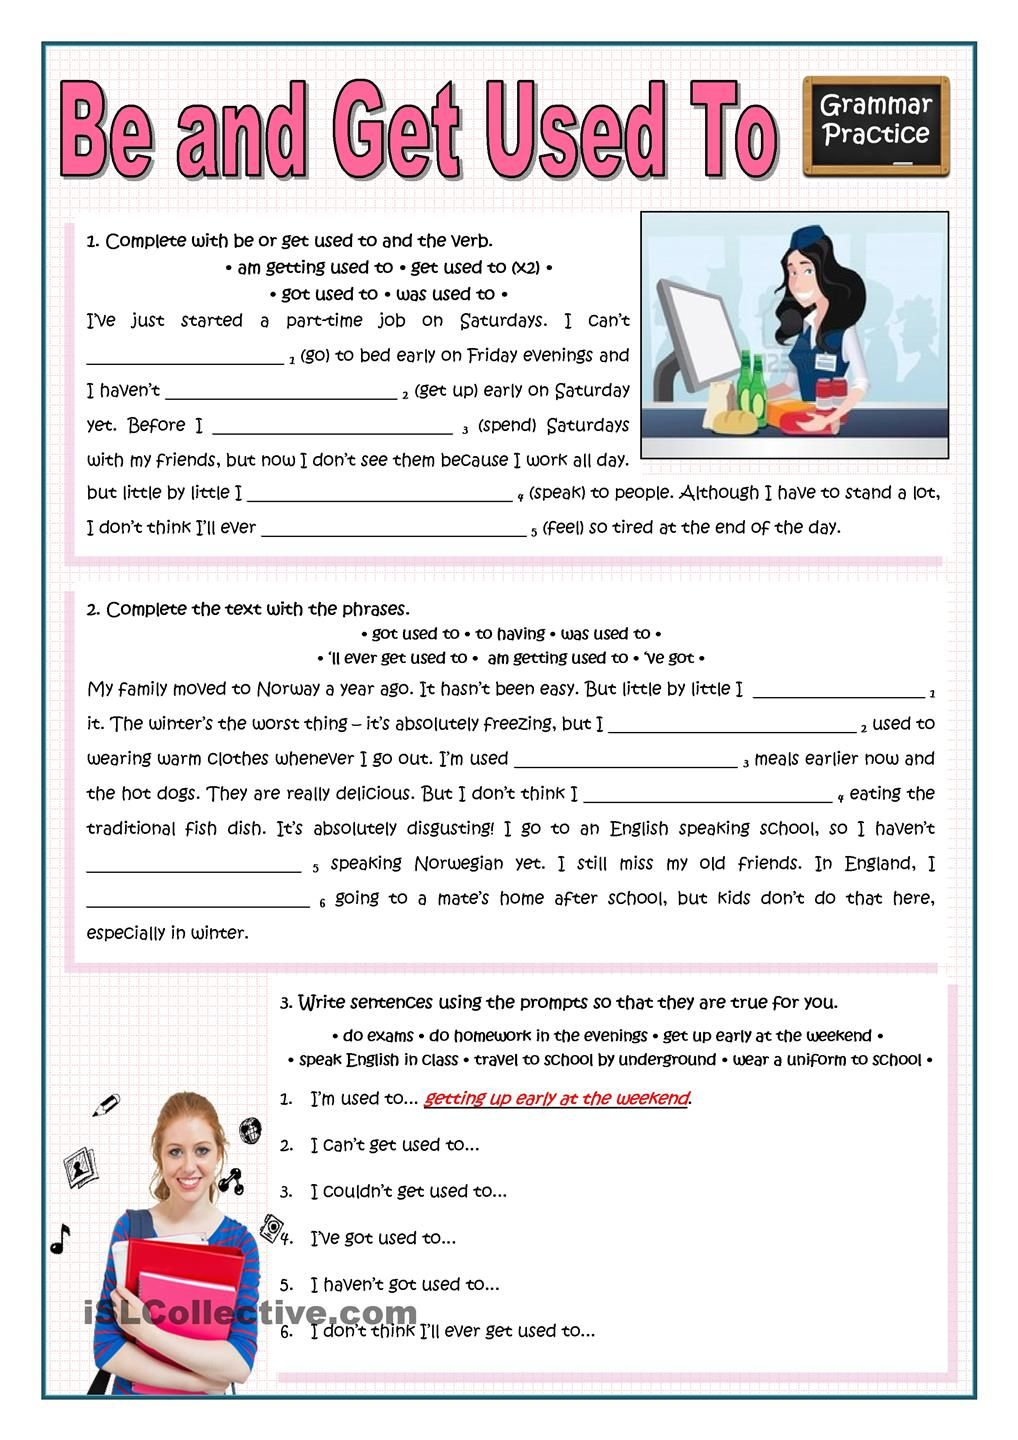 Be Or Get Used To More Practice Verb Practice Grammar Worksheets Learn English [ 1440 x 1018 Pixel ]